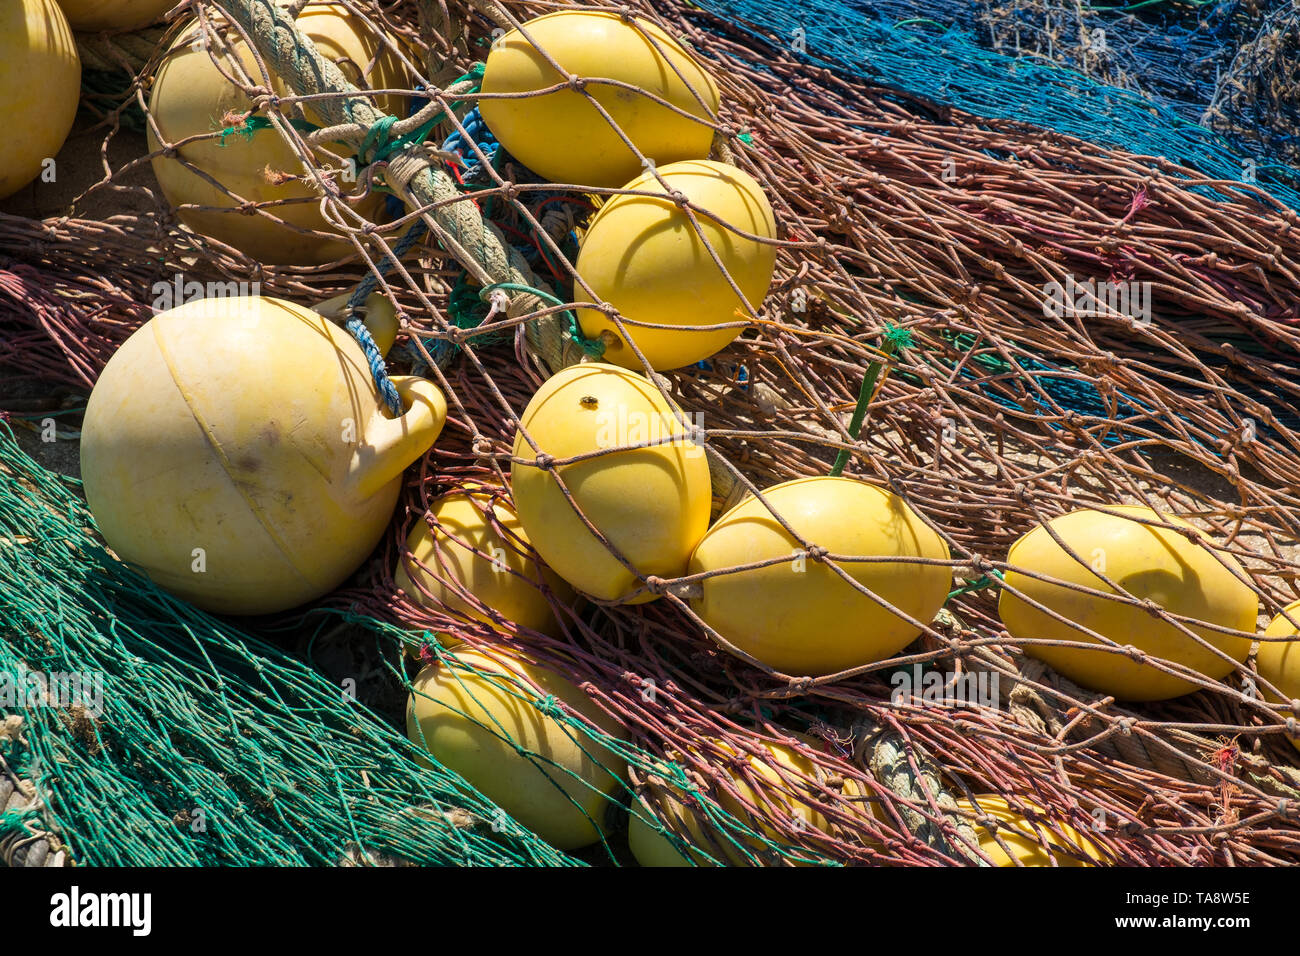 Old fishing nets in a heap under Mediterranean sunshine - Stock Image